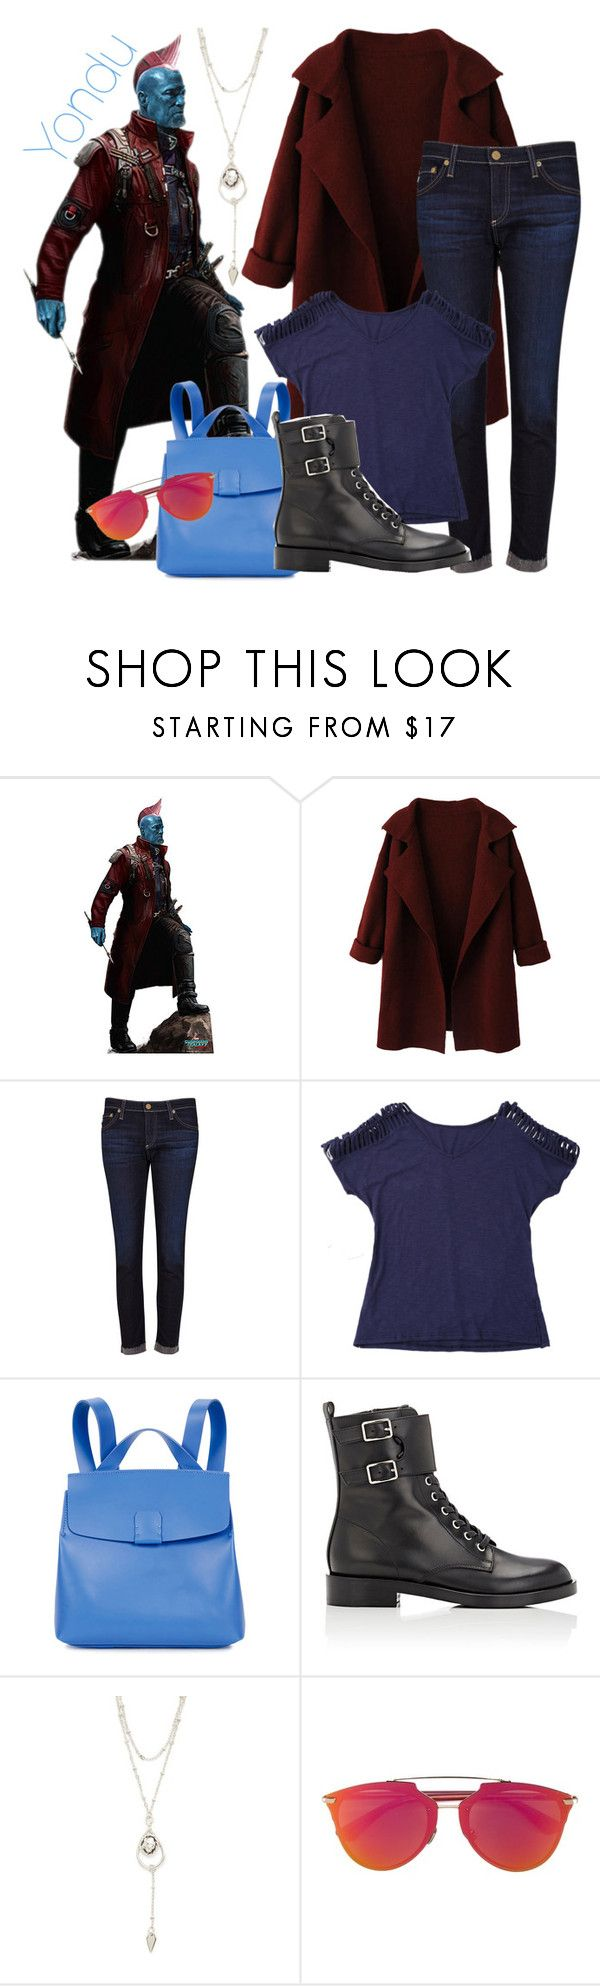 """""""Yondu"""" by claudialogan ❤ liked on Polyvore featuring AG Adriano Goldschmied, Nico Giani, Gianvito Rossi, Vanessa Mooney and Christian Dior"""